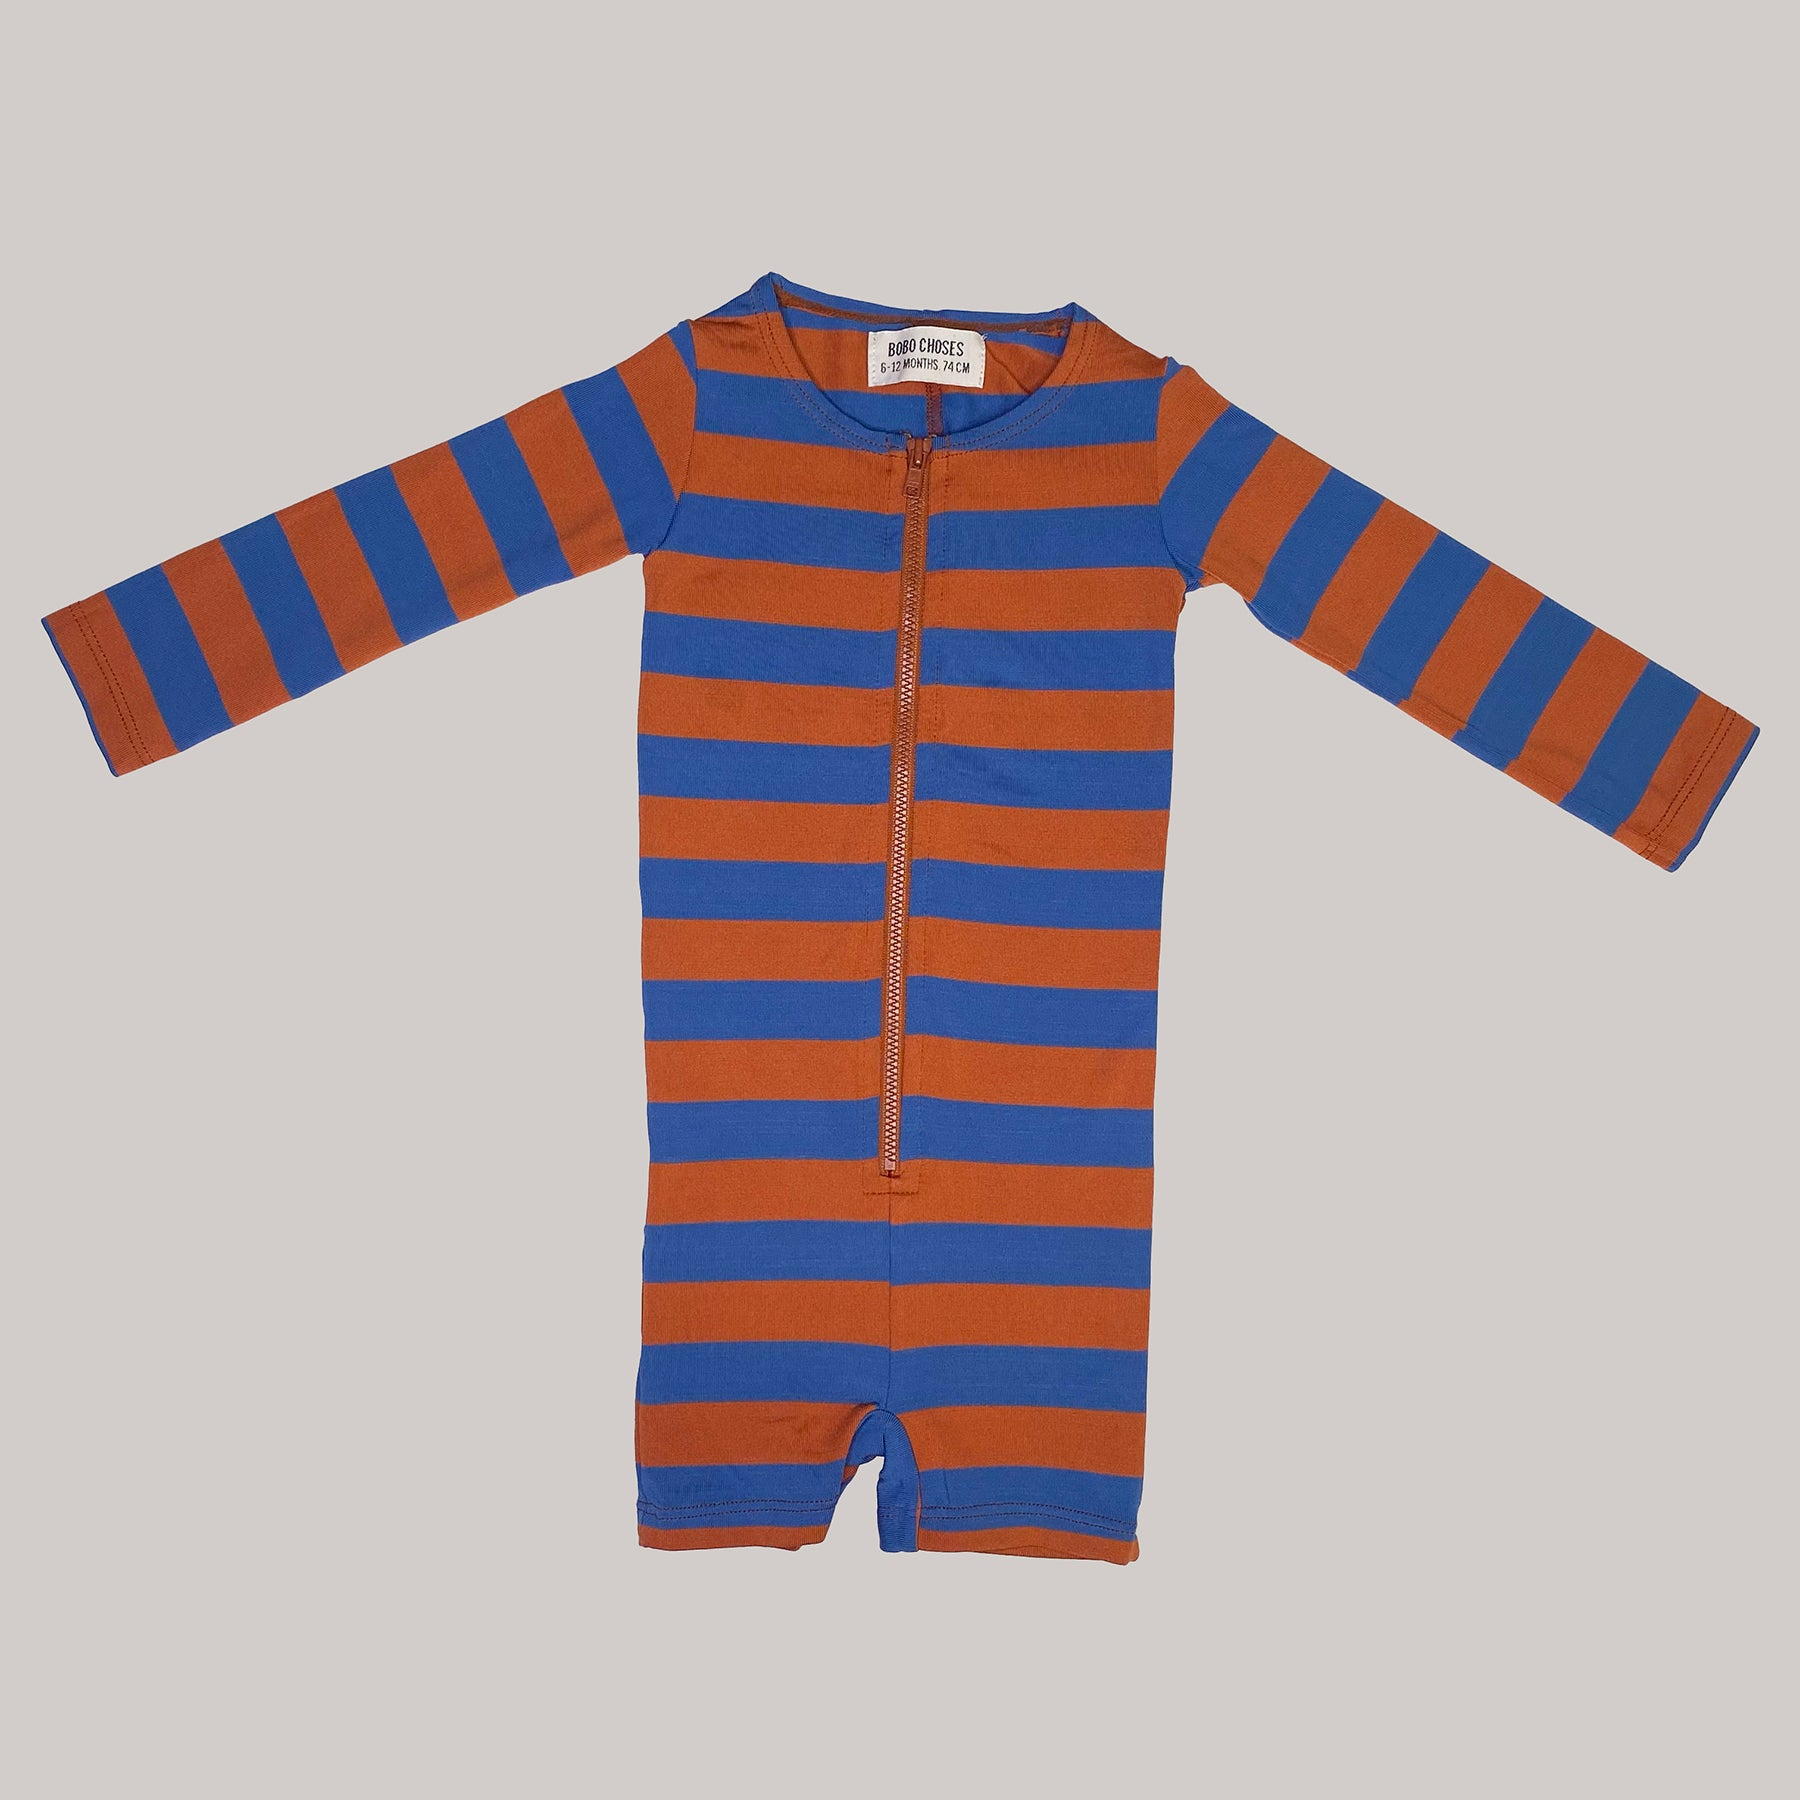 Re-wear : Bobo Choses uimapuku, blue/ brown | 74cm